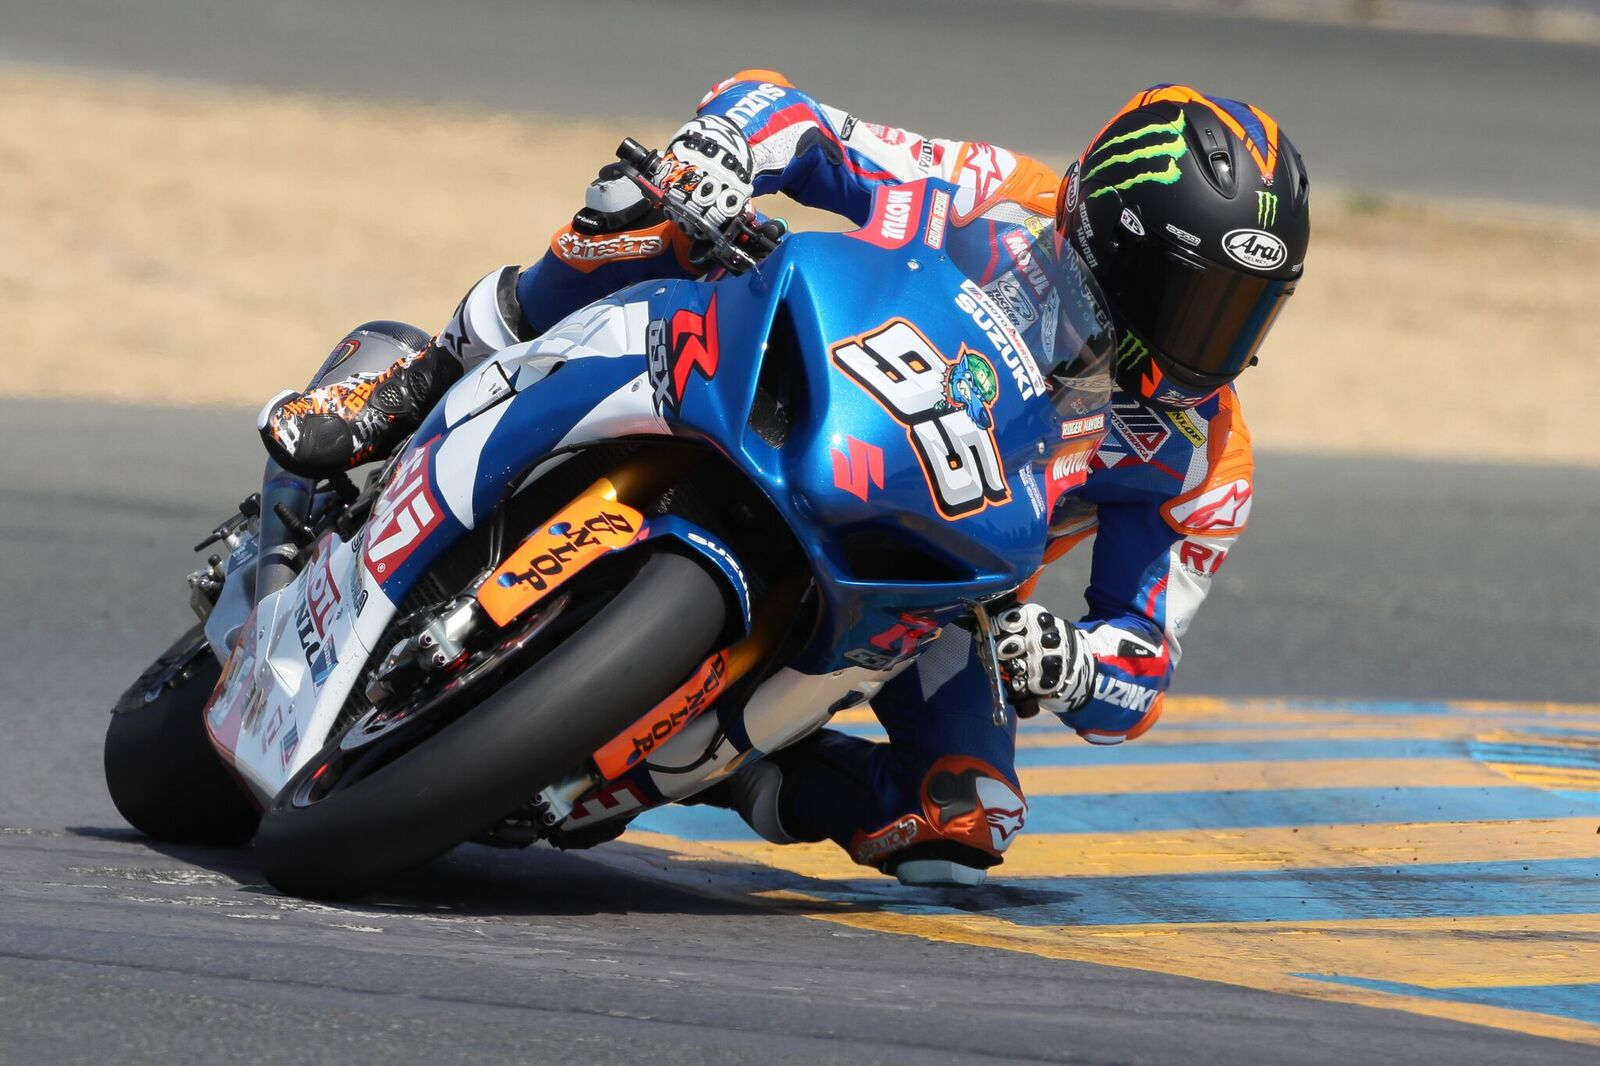 Fans graciously let Roger Hayden know just how much they thought of him in Sonoma, as the popular rider raced his final event at the Northern California circuit. (Brian J. Nelson photo)